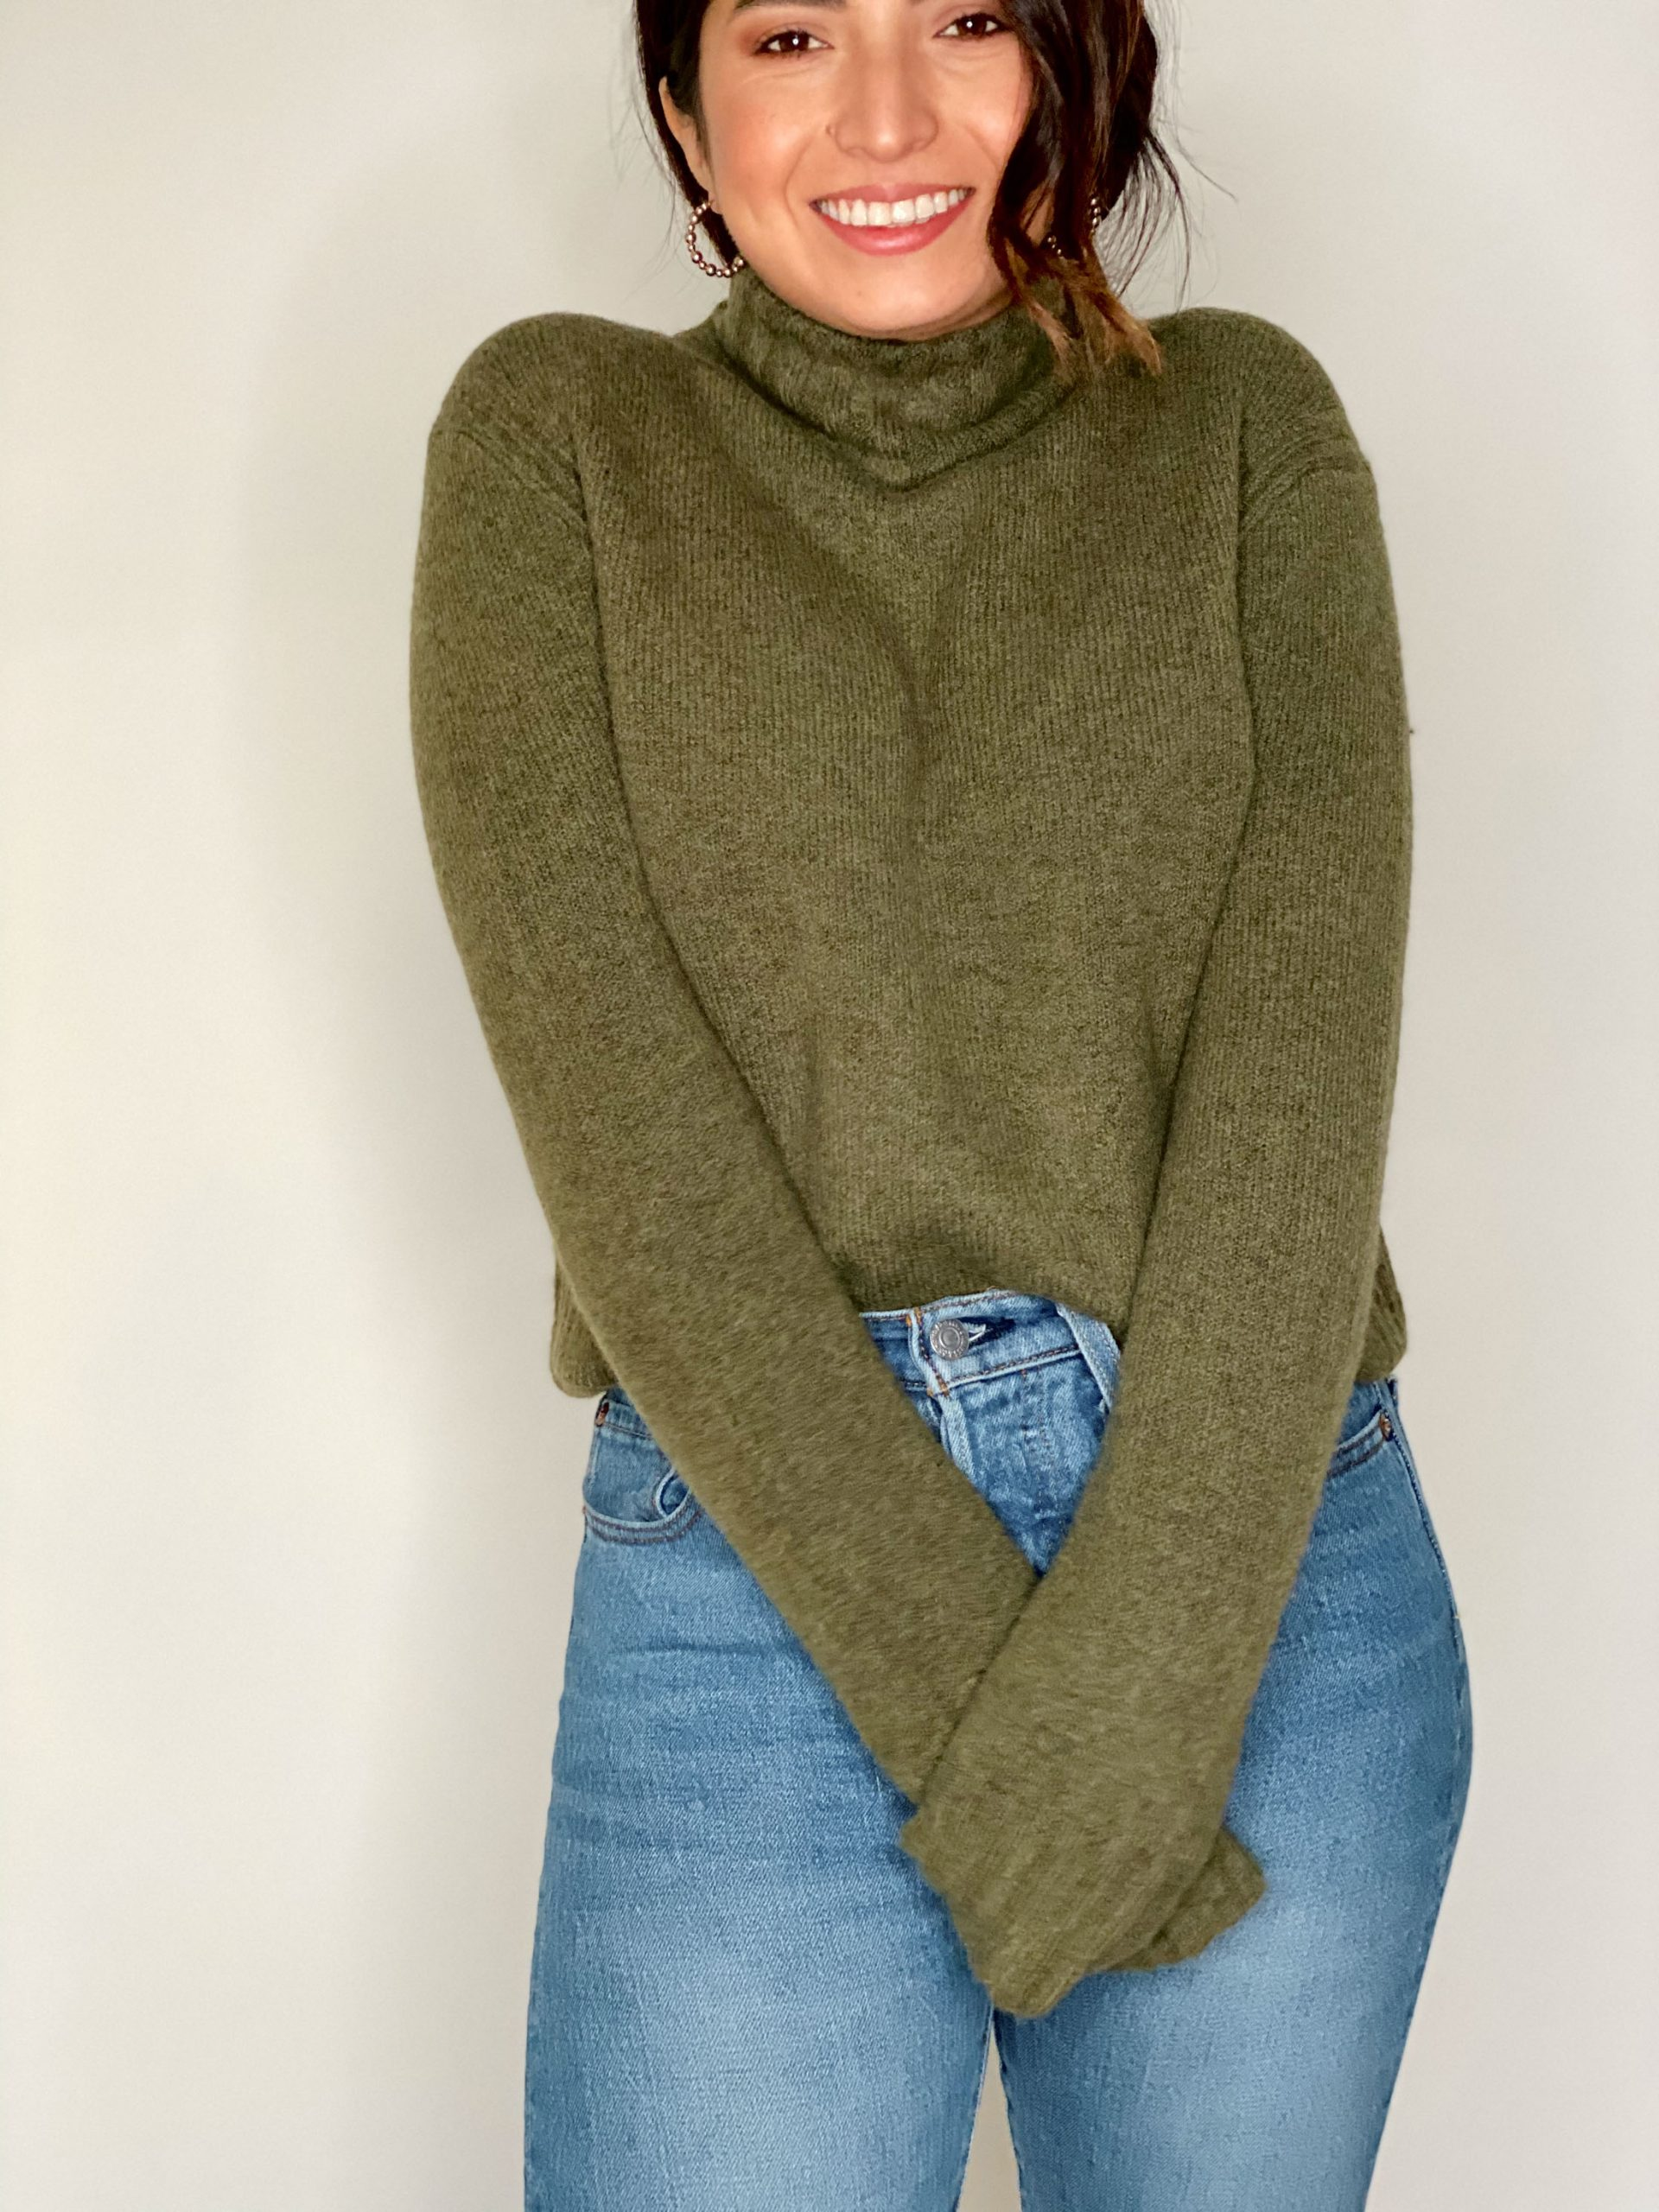 For your cold-weather momdrobe, we bring you warm, easy sweaters; coats in pretty colors & blazers to level up casual outfits or throw on for Zoom calls.